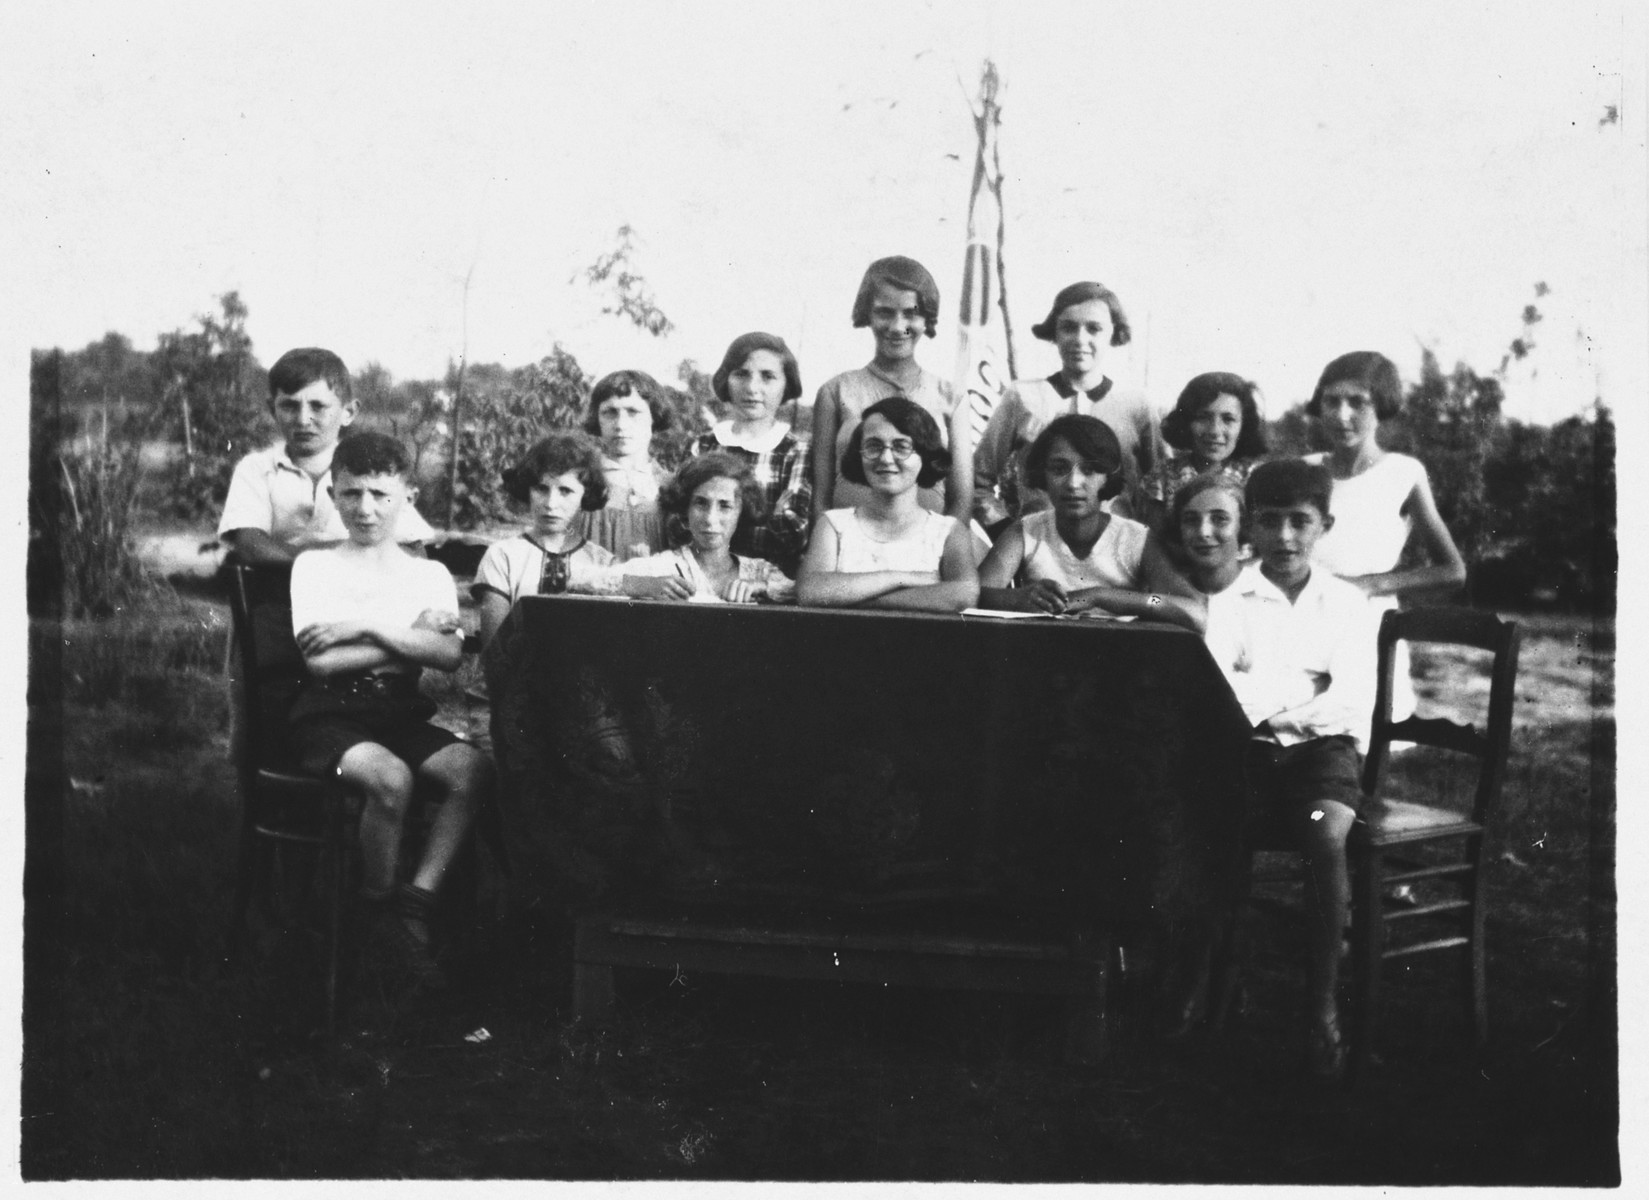 Group portrait of members of the children's committee of the Jewish Zugob school, sponsored by the Jewish Artisan Association.  Among those  pictured (seated center, wearing glasses) are [first name unknown] Erlichman, who was a shoemaker in Antwerp; and (standing far right) Lily Bock.